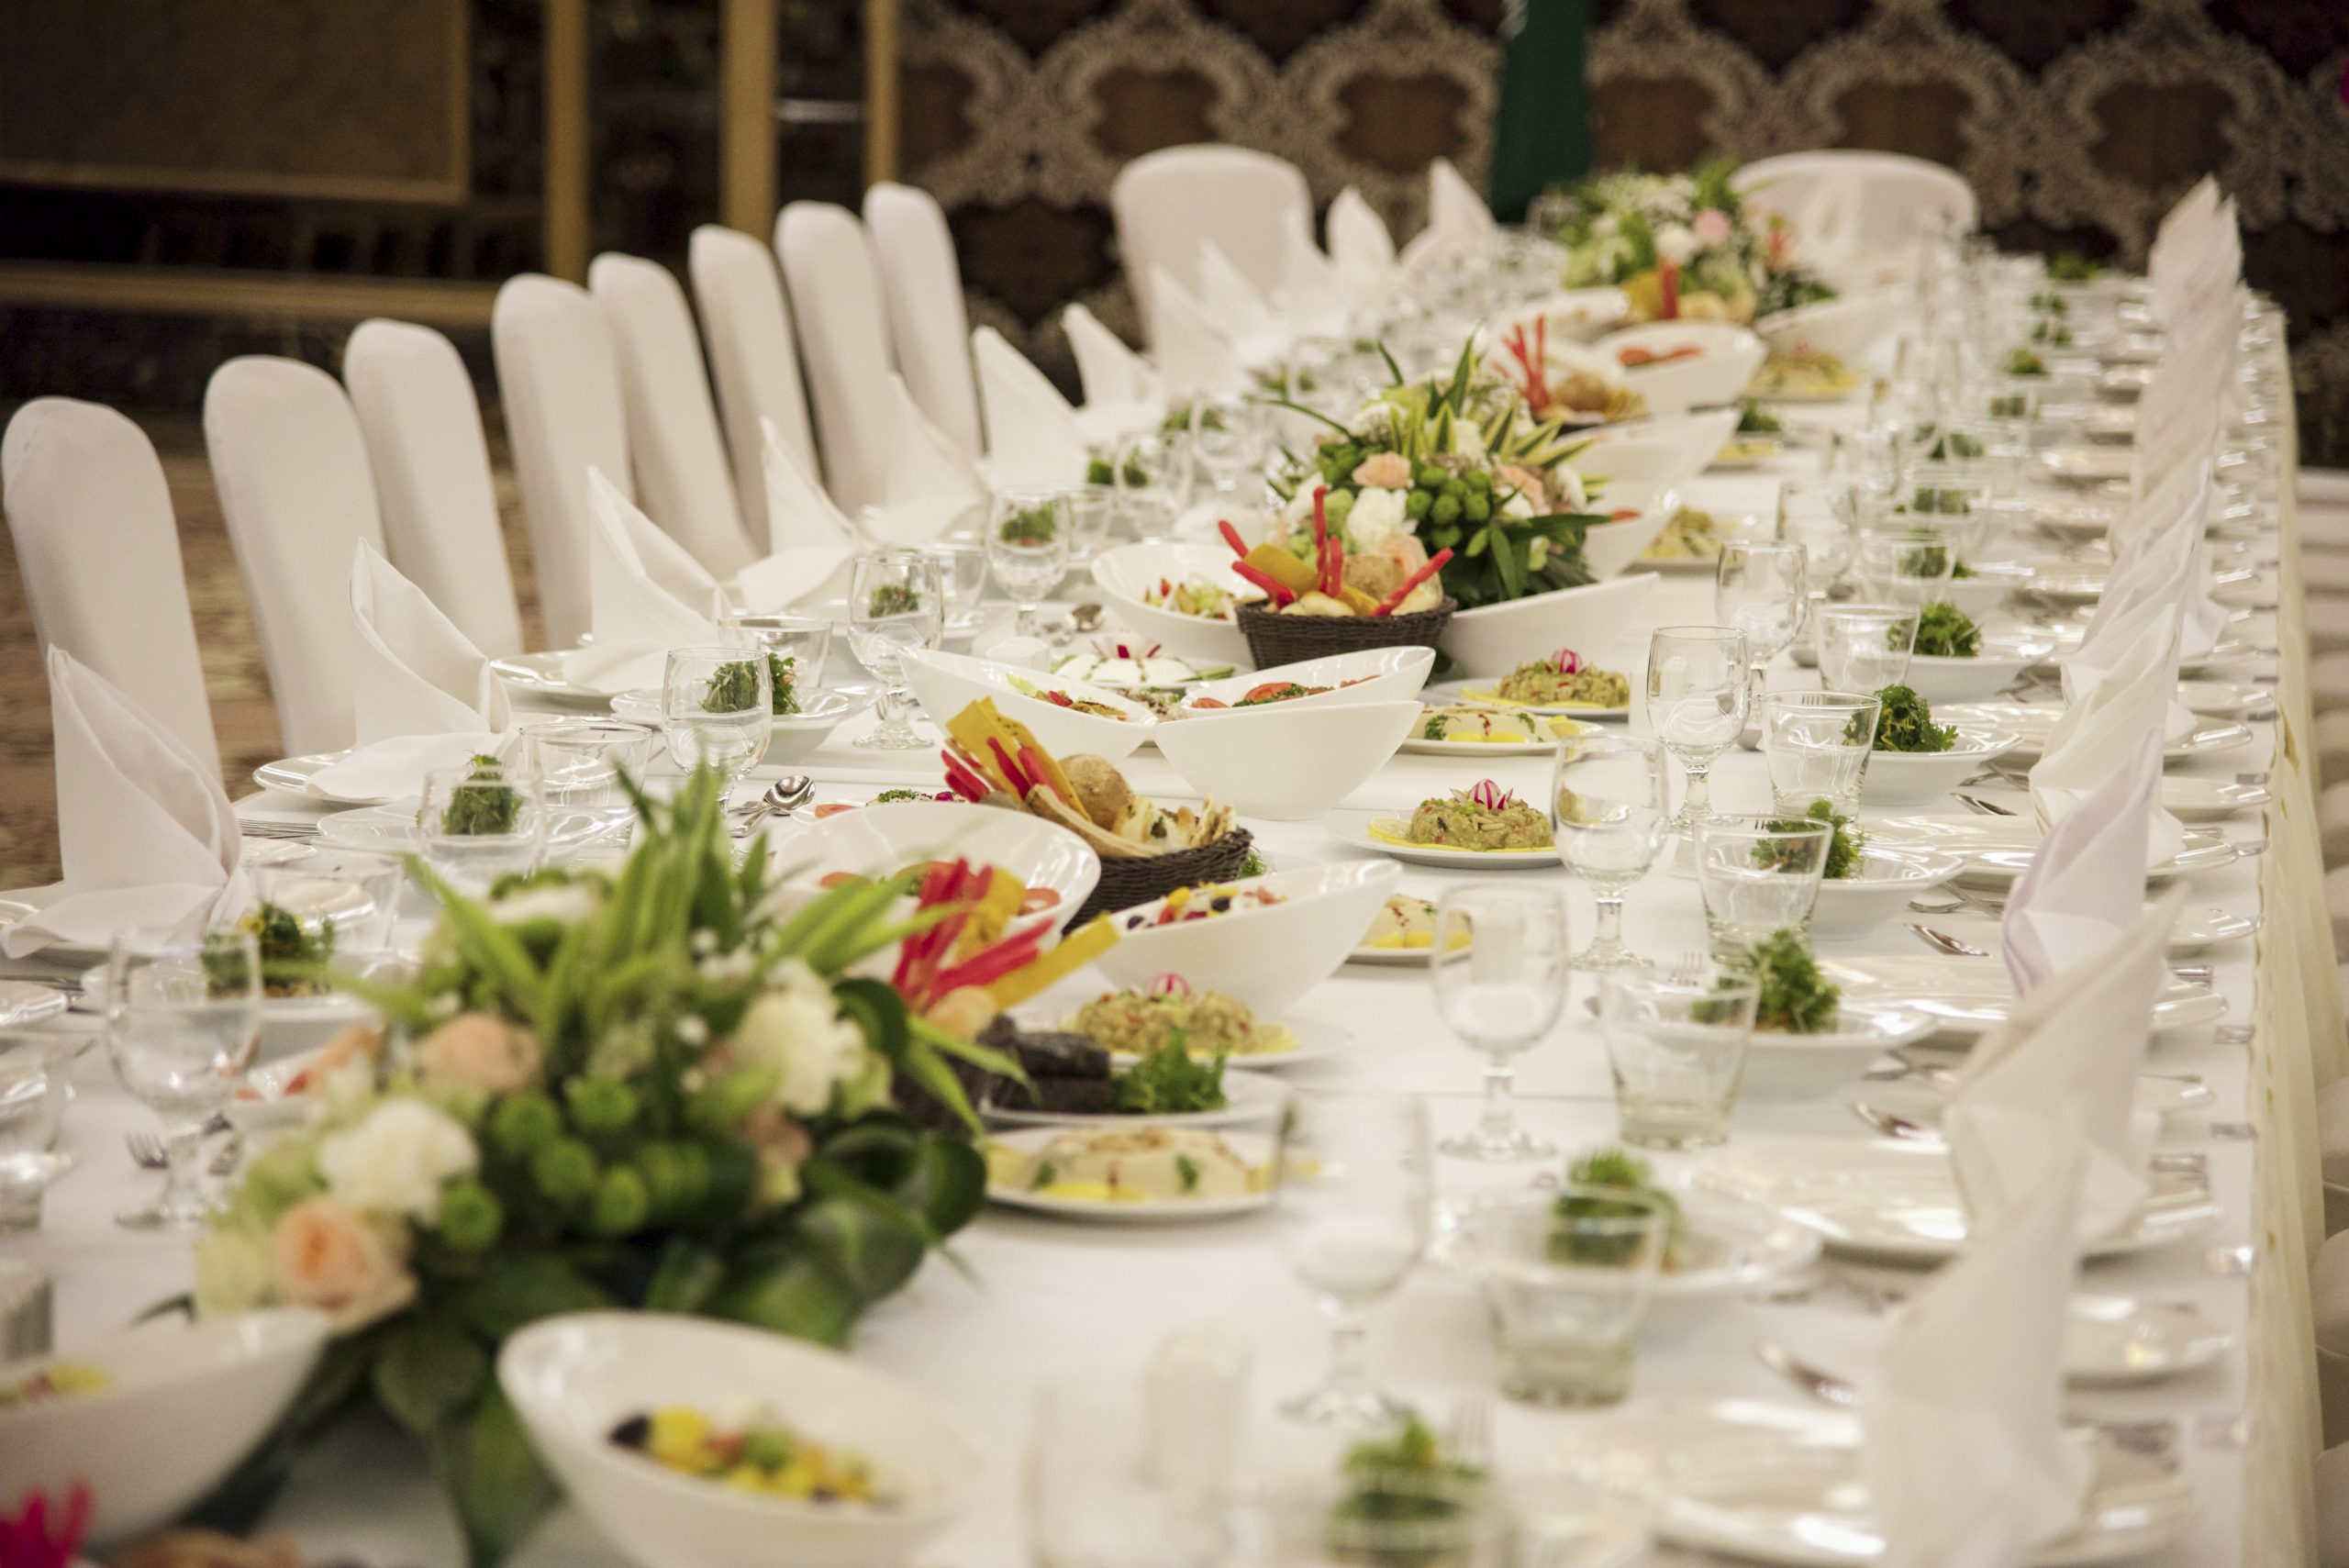 flower-meal-wedding-buffet-aisle-ceremony-1035100-pxhere.com